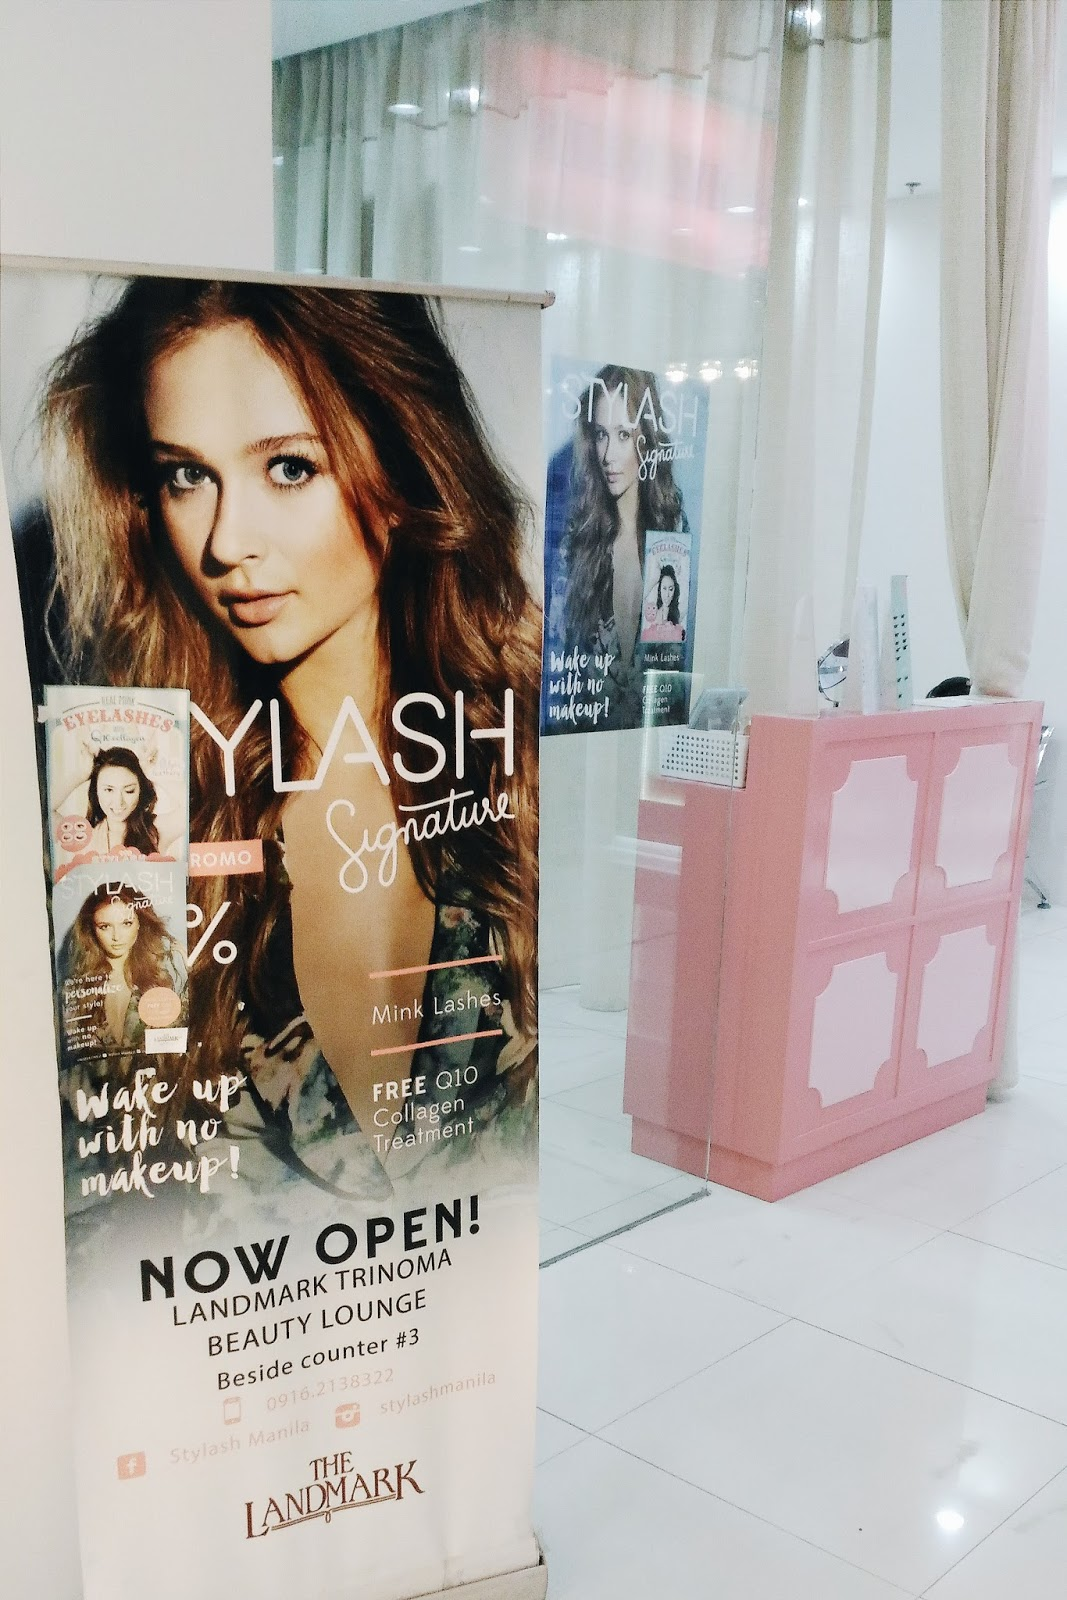 4508488f57e Stylash Landmark Trinoma is hard to find! If I didn't ask the guard where  it was, I would have roamed endlessly. It's located at the Beauty Lounge.